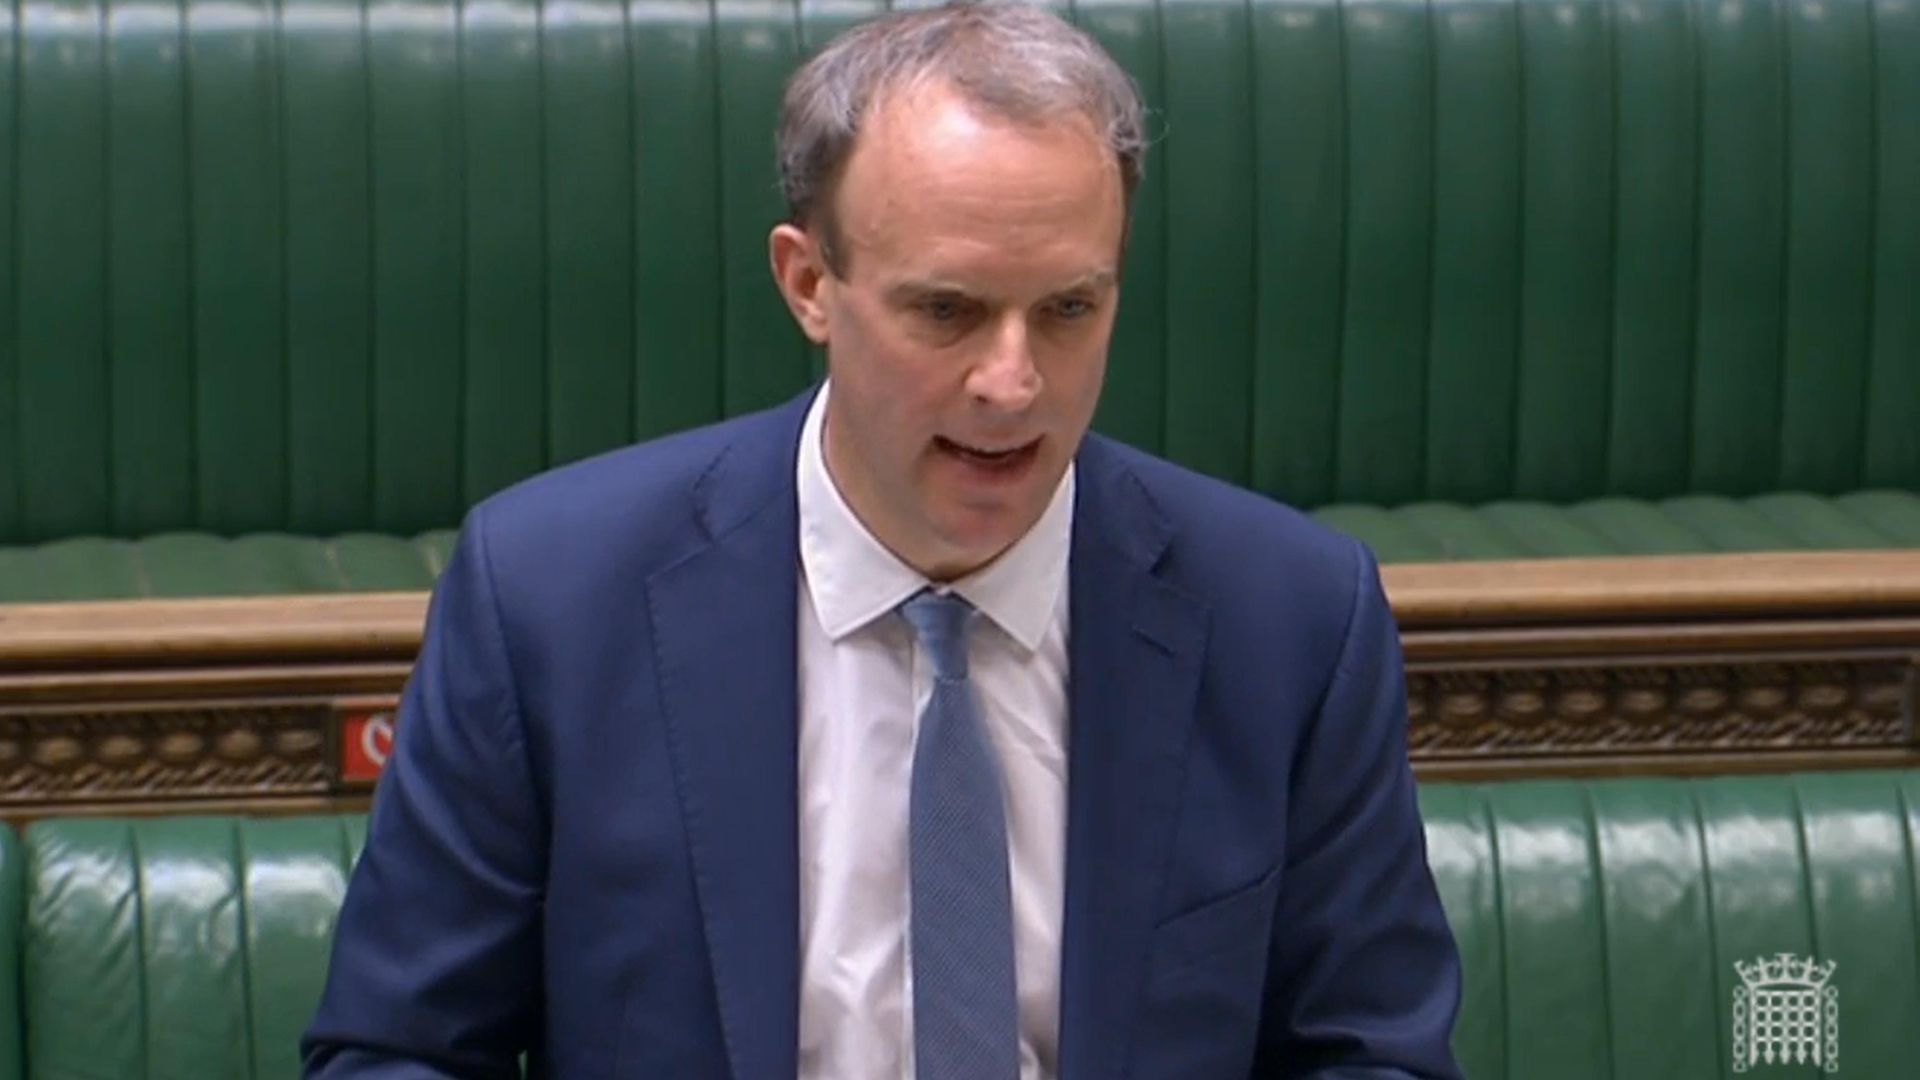 Foreign secretary Dominic Raab (pictured above) clashed with MPs on the International Development Committee on Thursday - Credit: PA